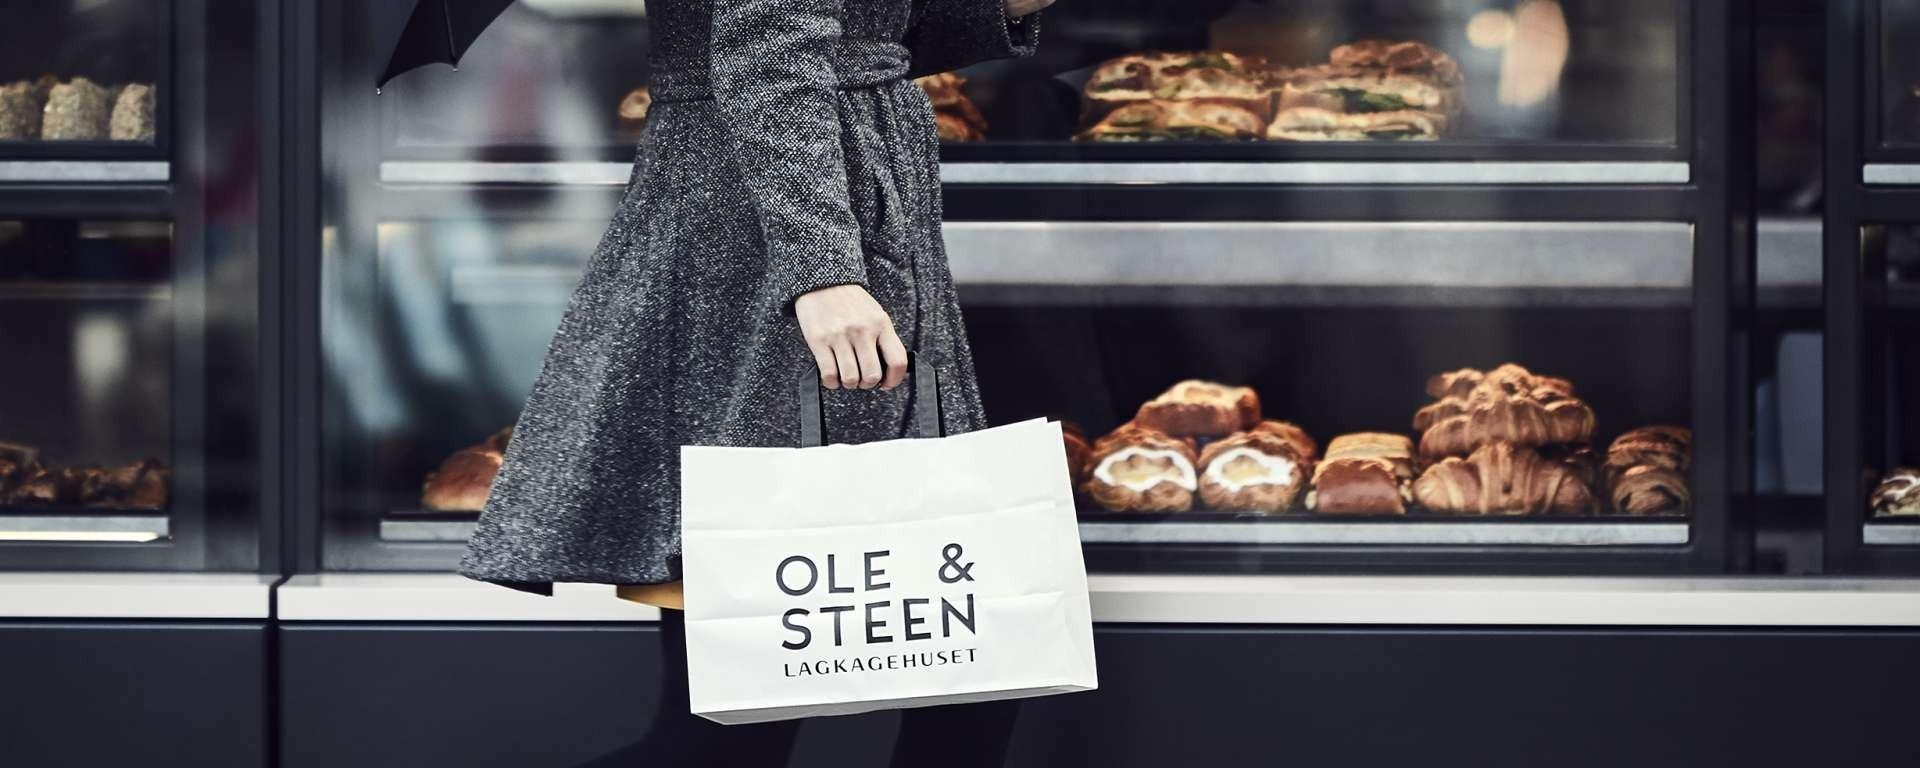 Ole & Steen - Notting Hill Gate Brand Cover